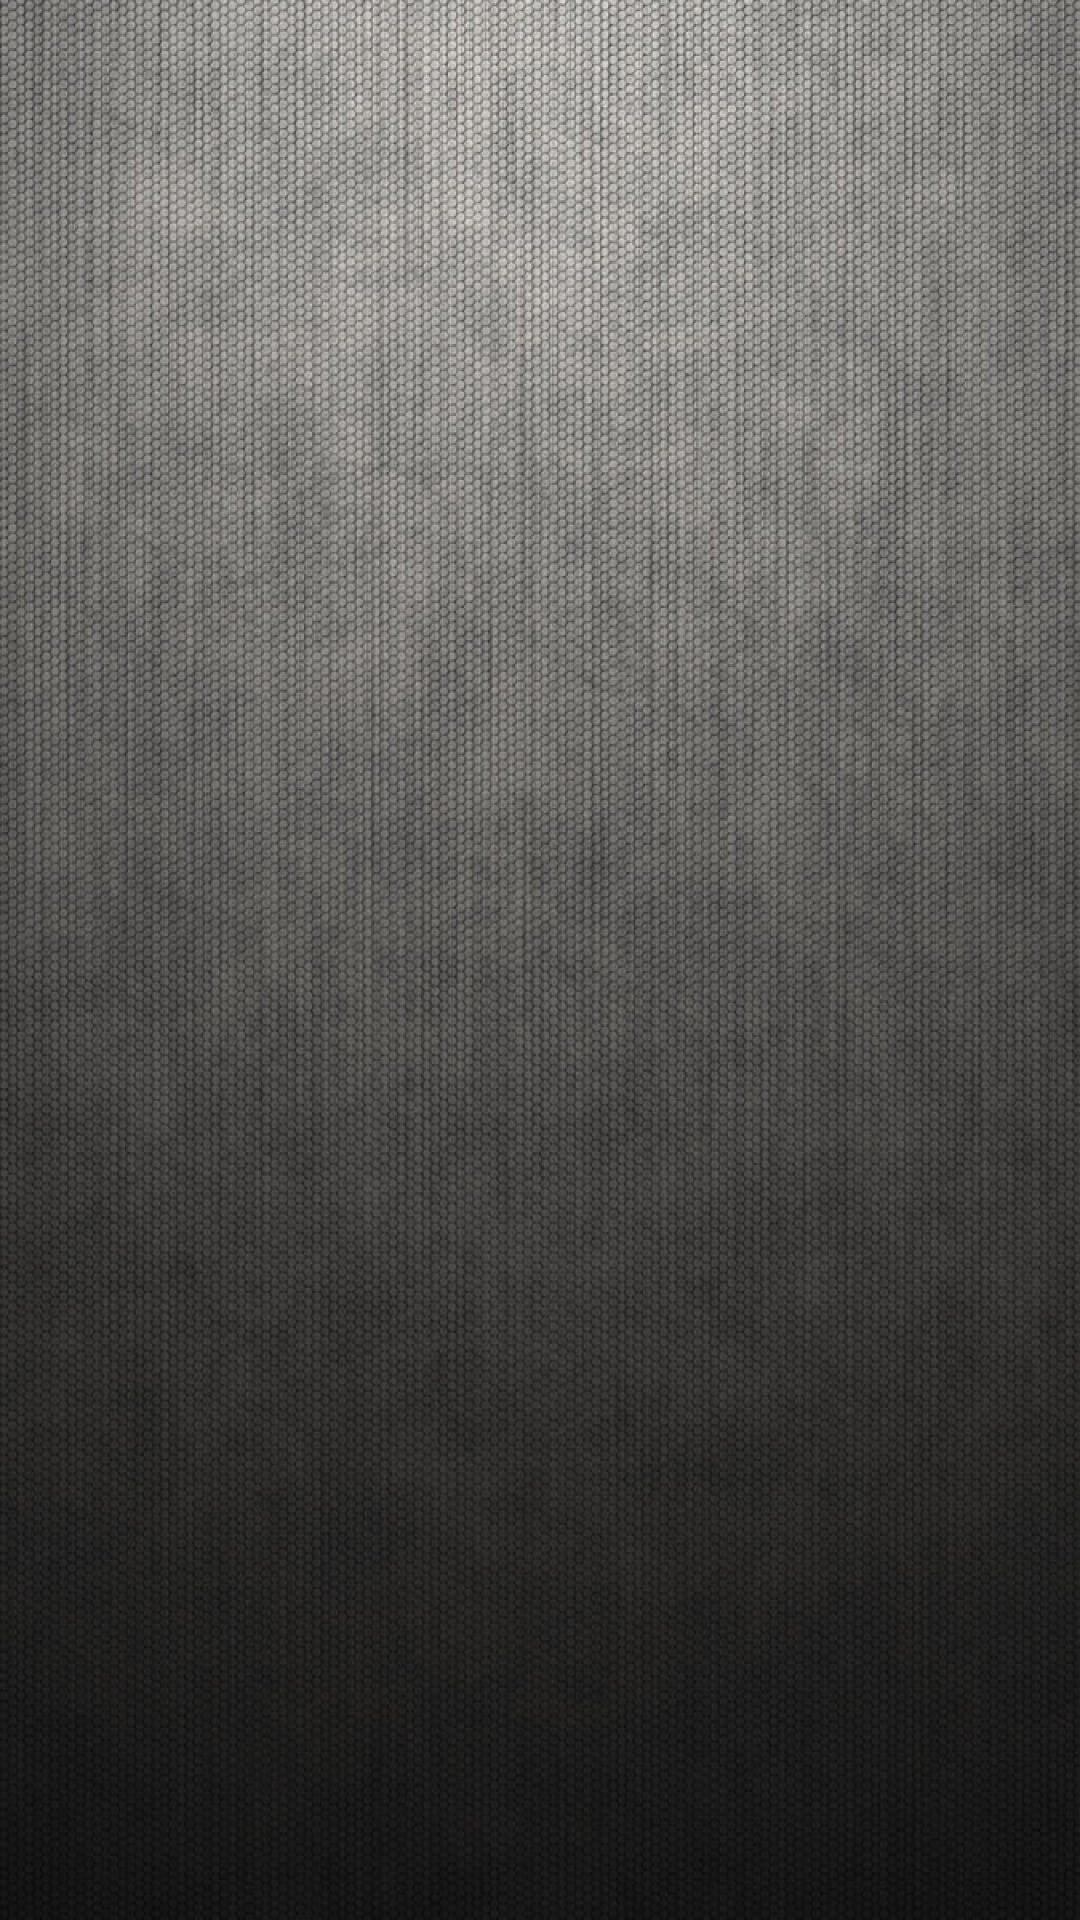 1080x1920 Android wallpapers Grey And Black .